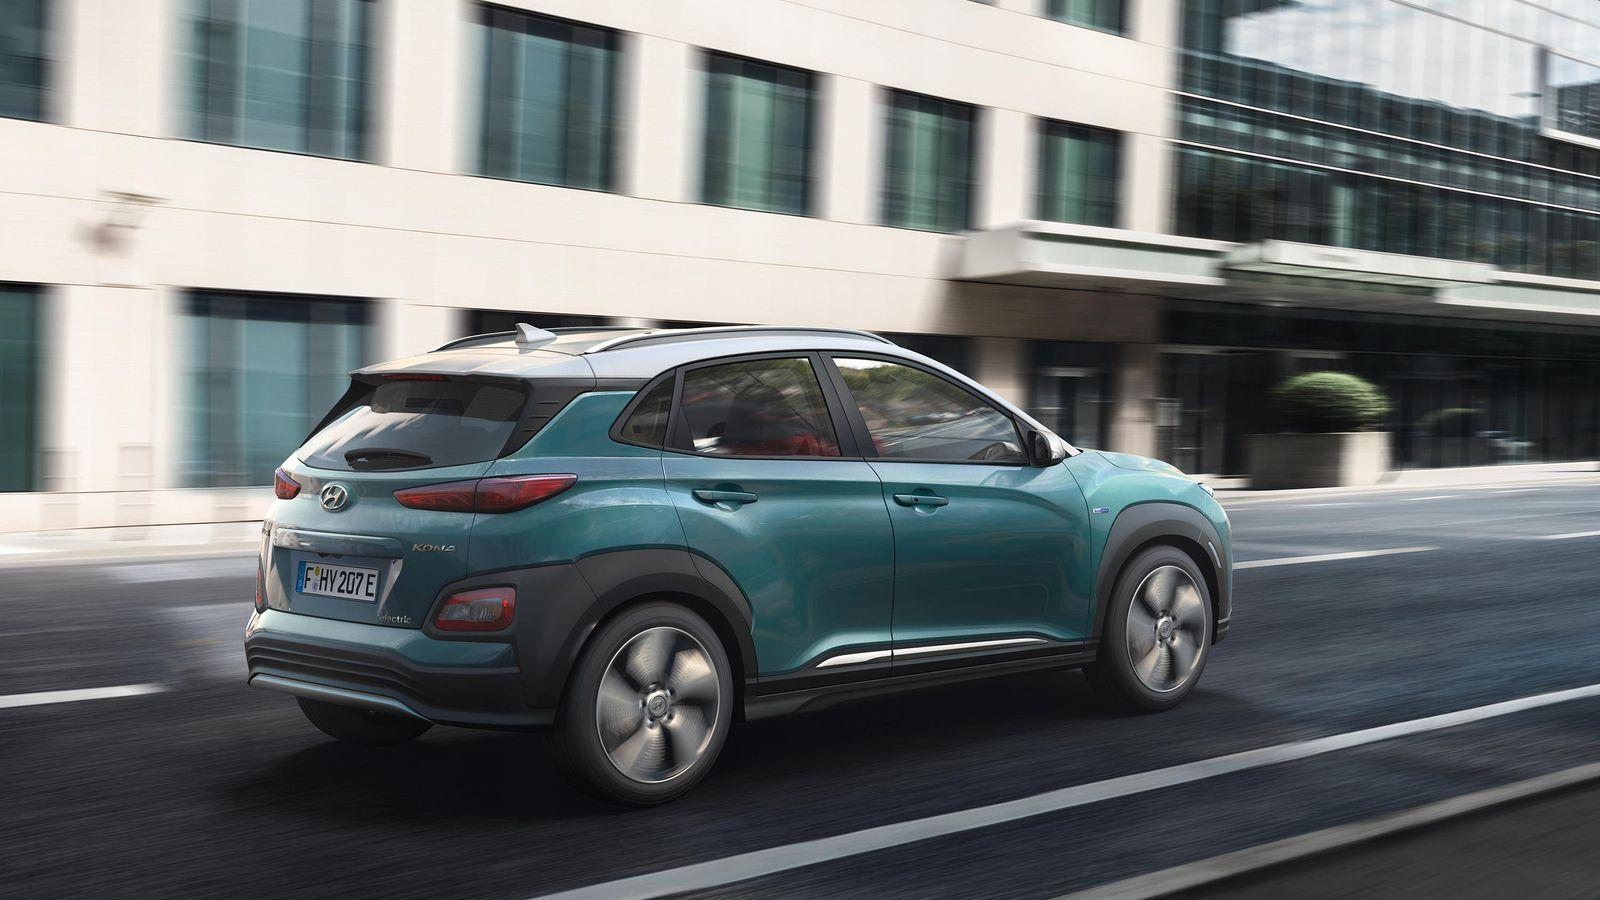 Hyundai Kona Electric SUV to charge into NY Auto Show